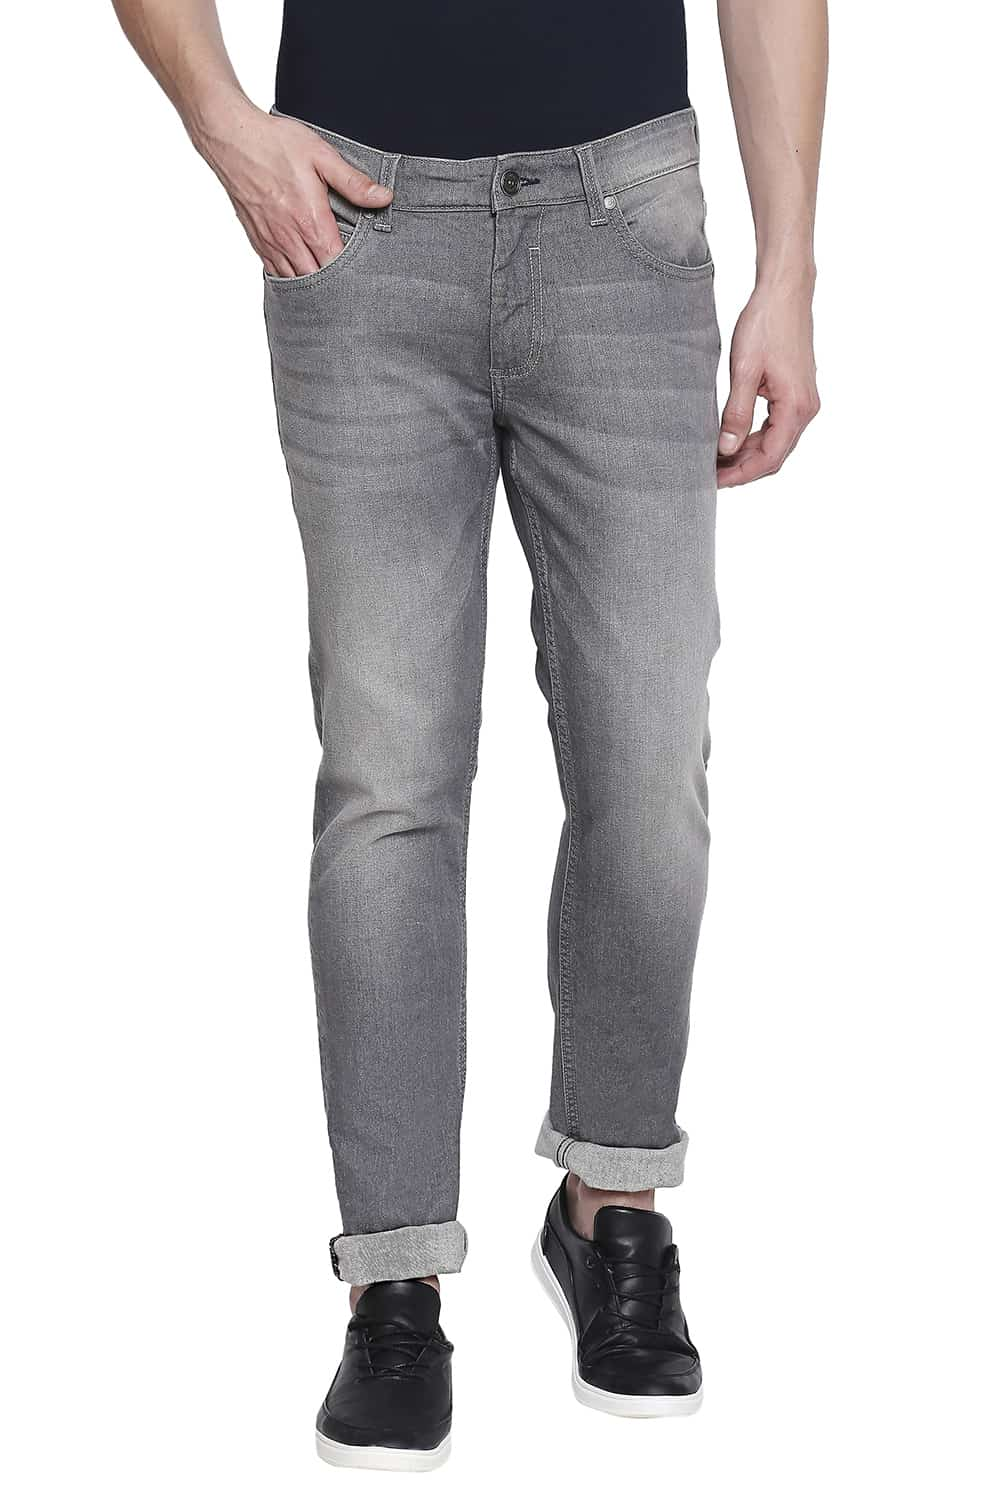 Basics | Basics Blade Fit Smoked Pearl Stretch Jeans